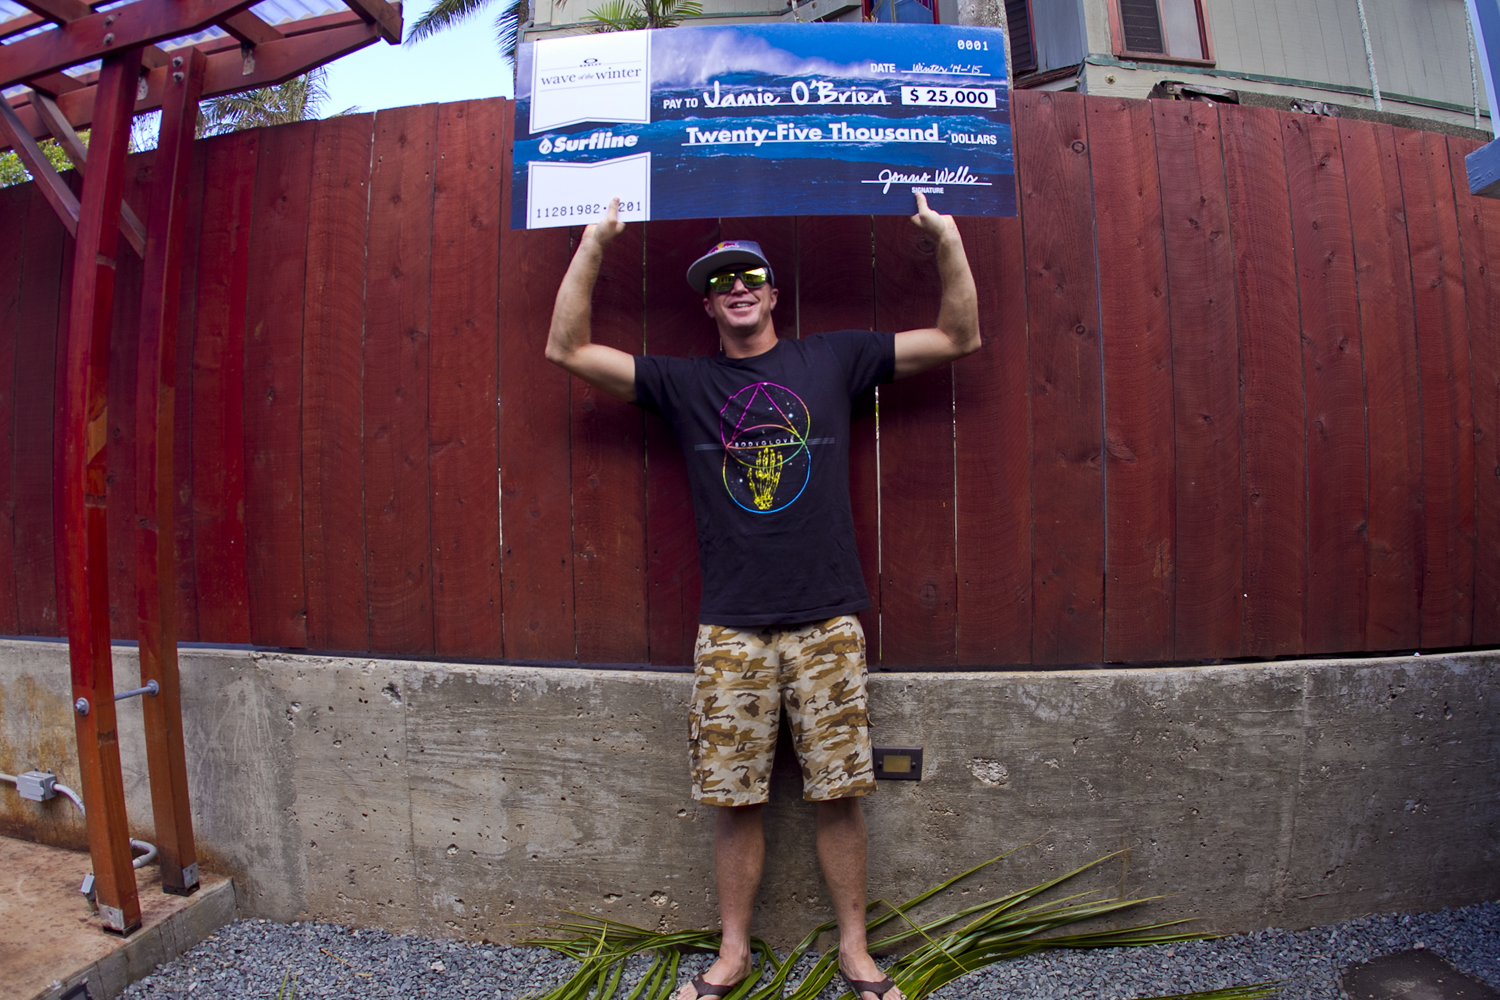 Jamie O'Brien Wins Oakley Wave of the Winter Powered By Surfline